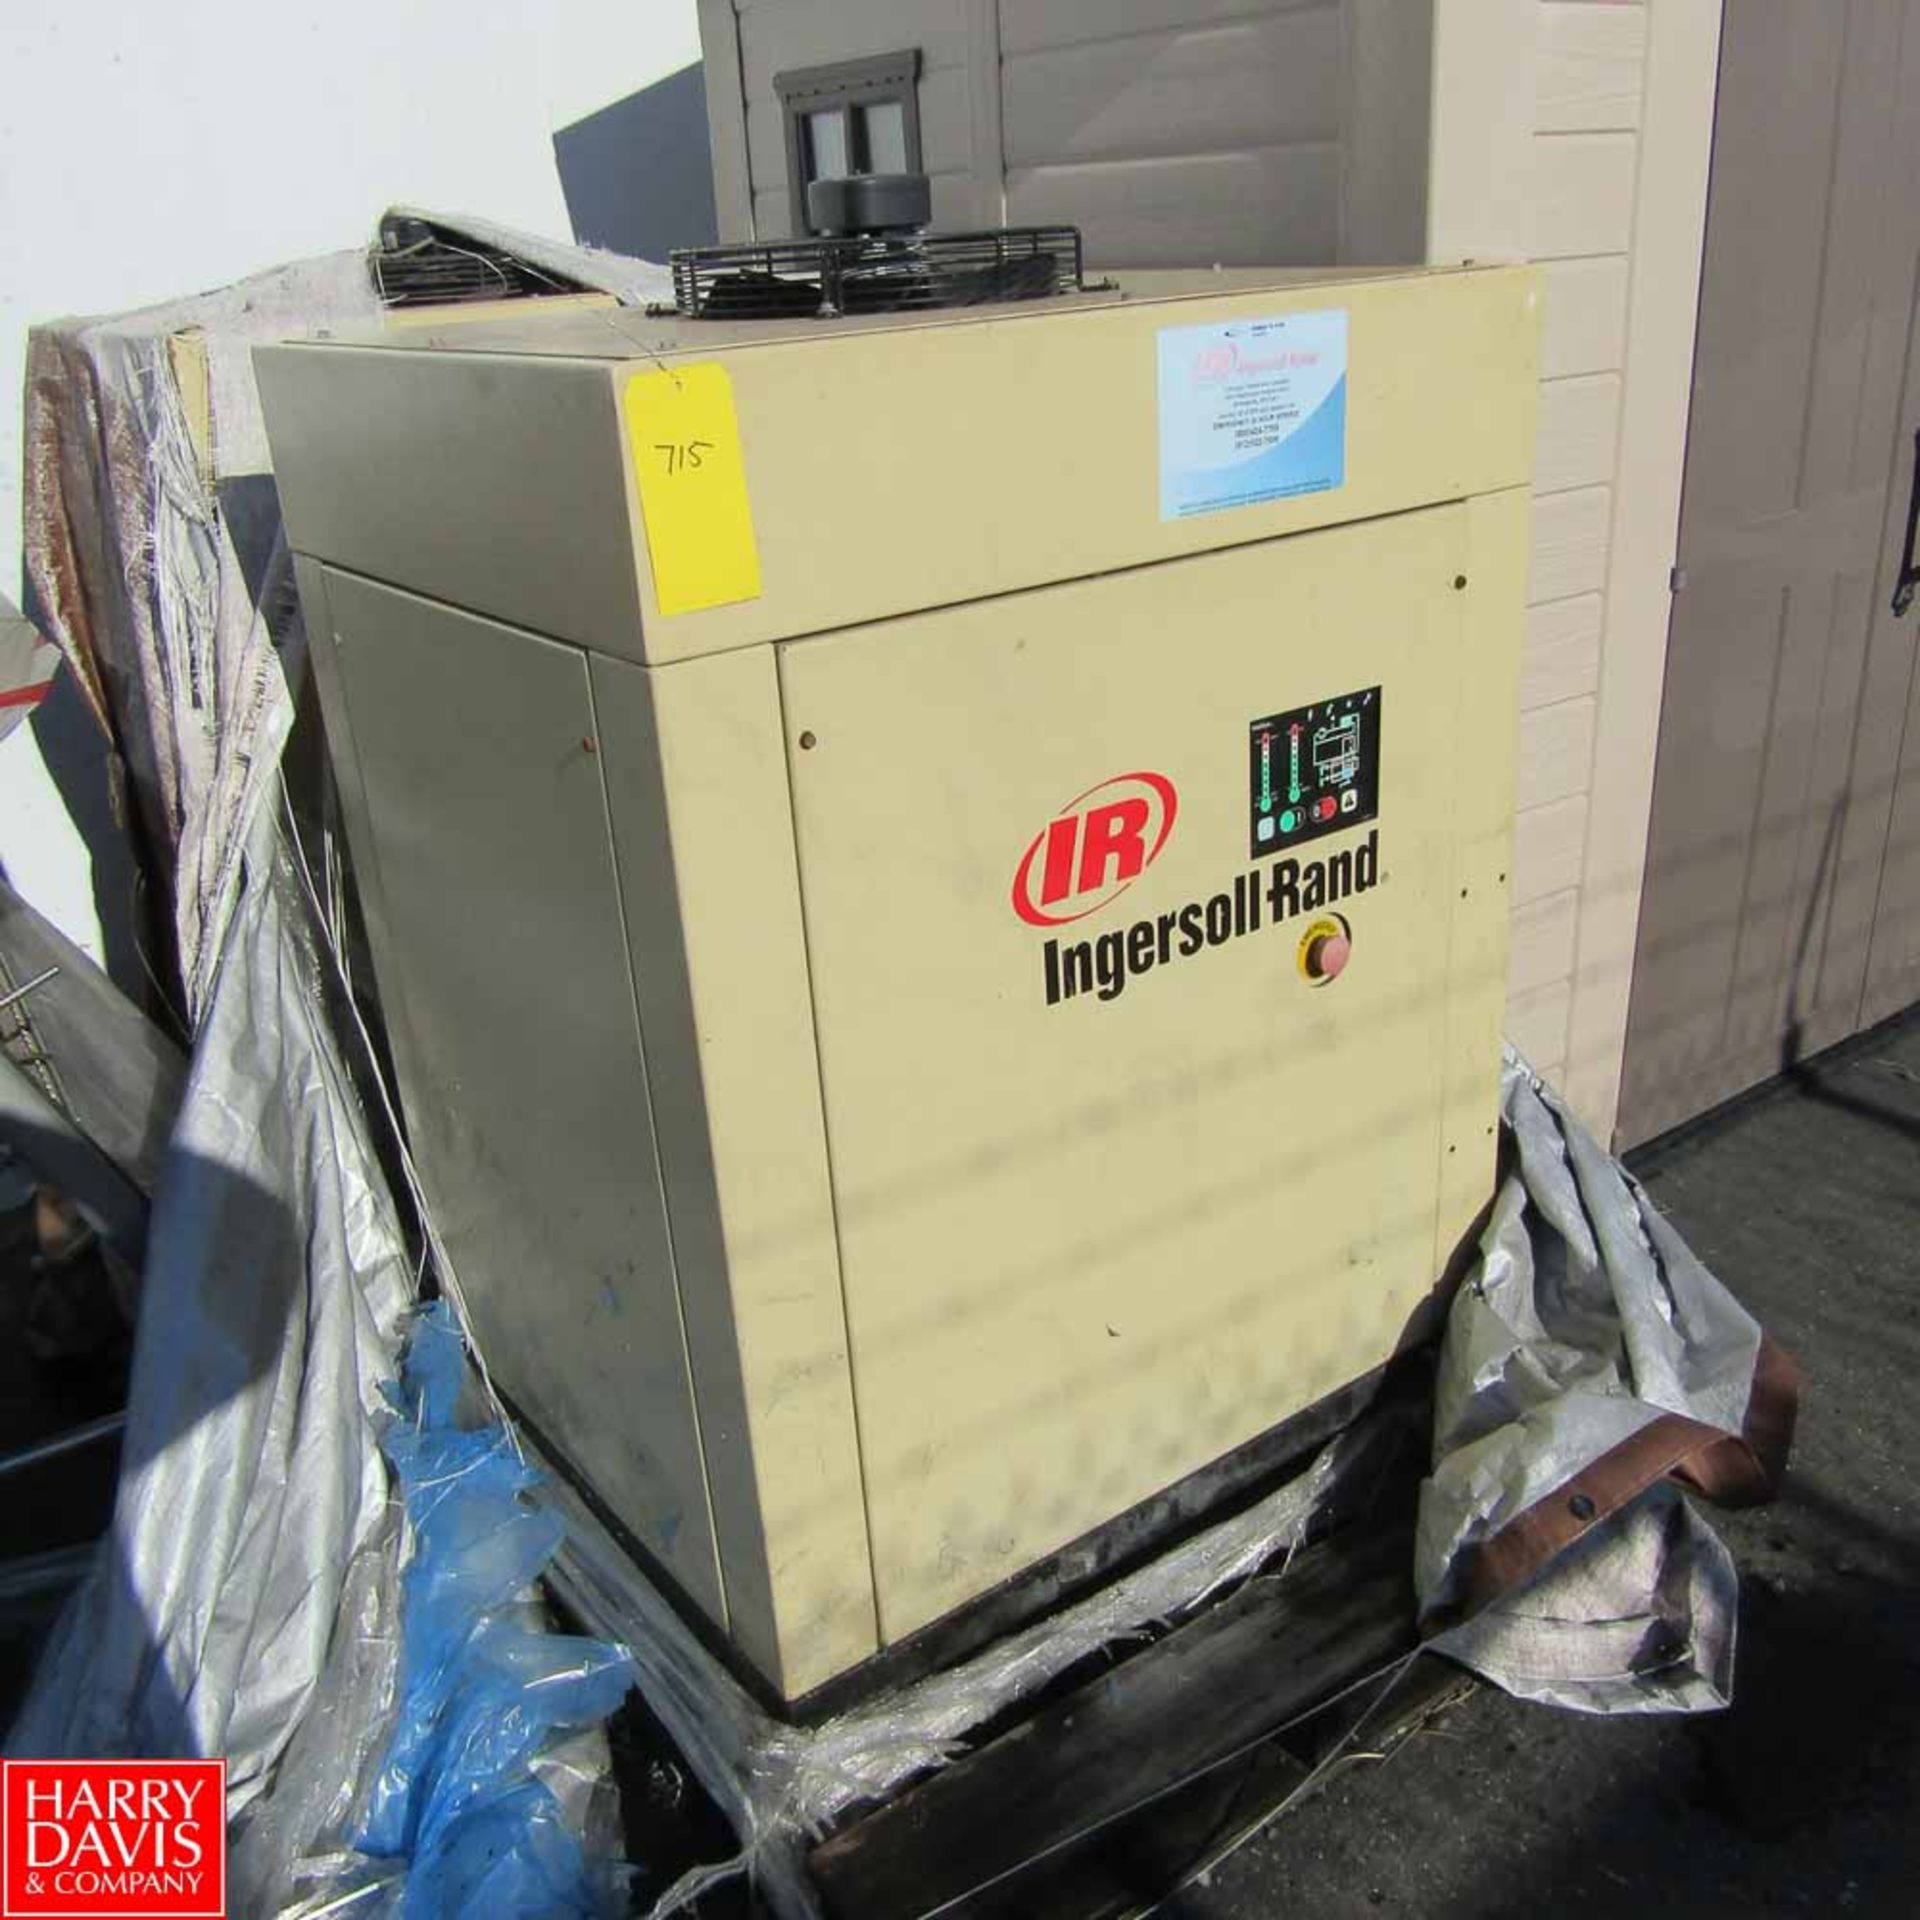 Lot 715 - Ingersoll Rand Air Dryer Model TS2A Rigging Fee: 100